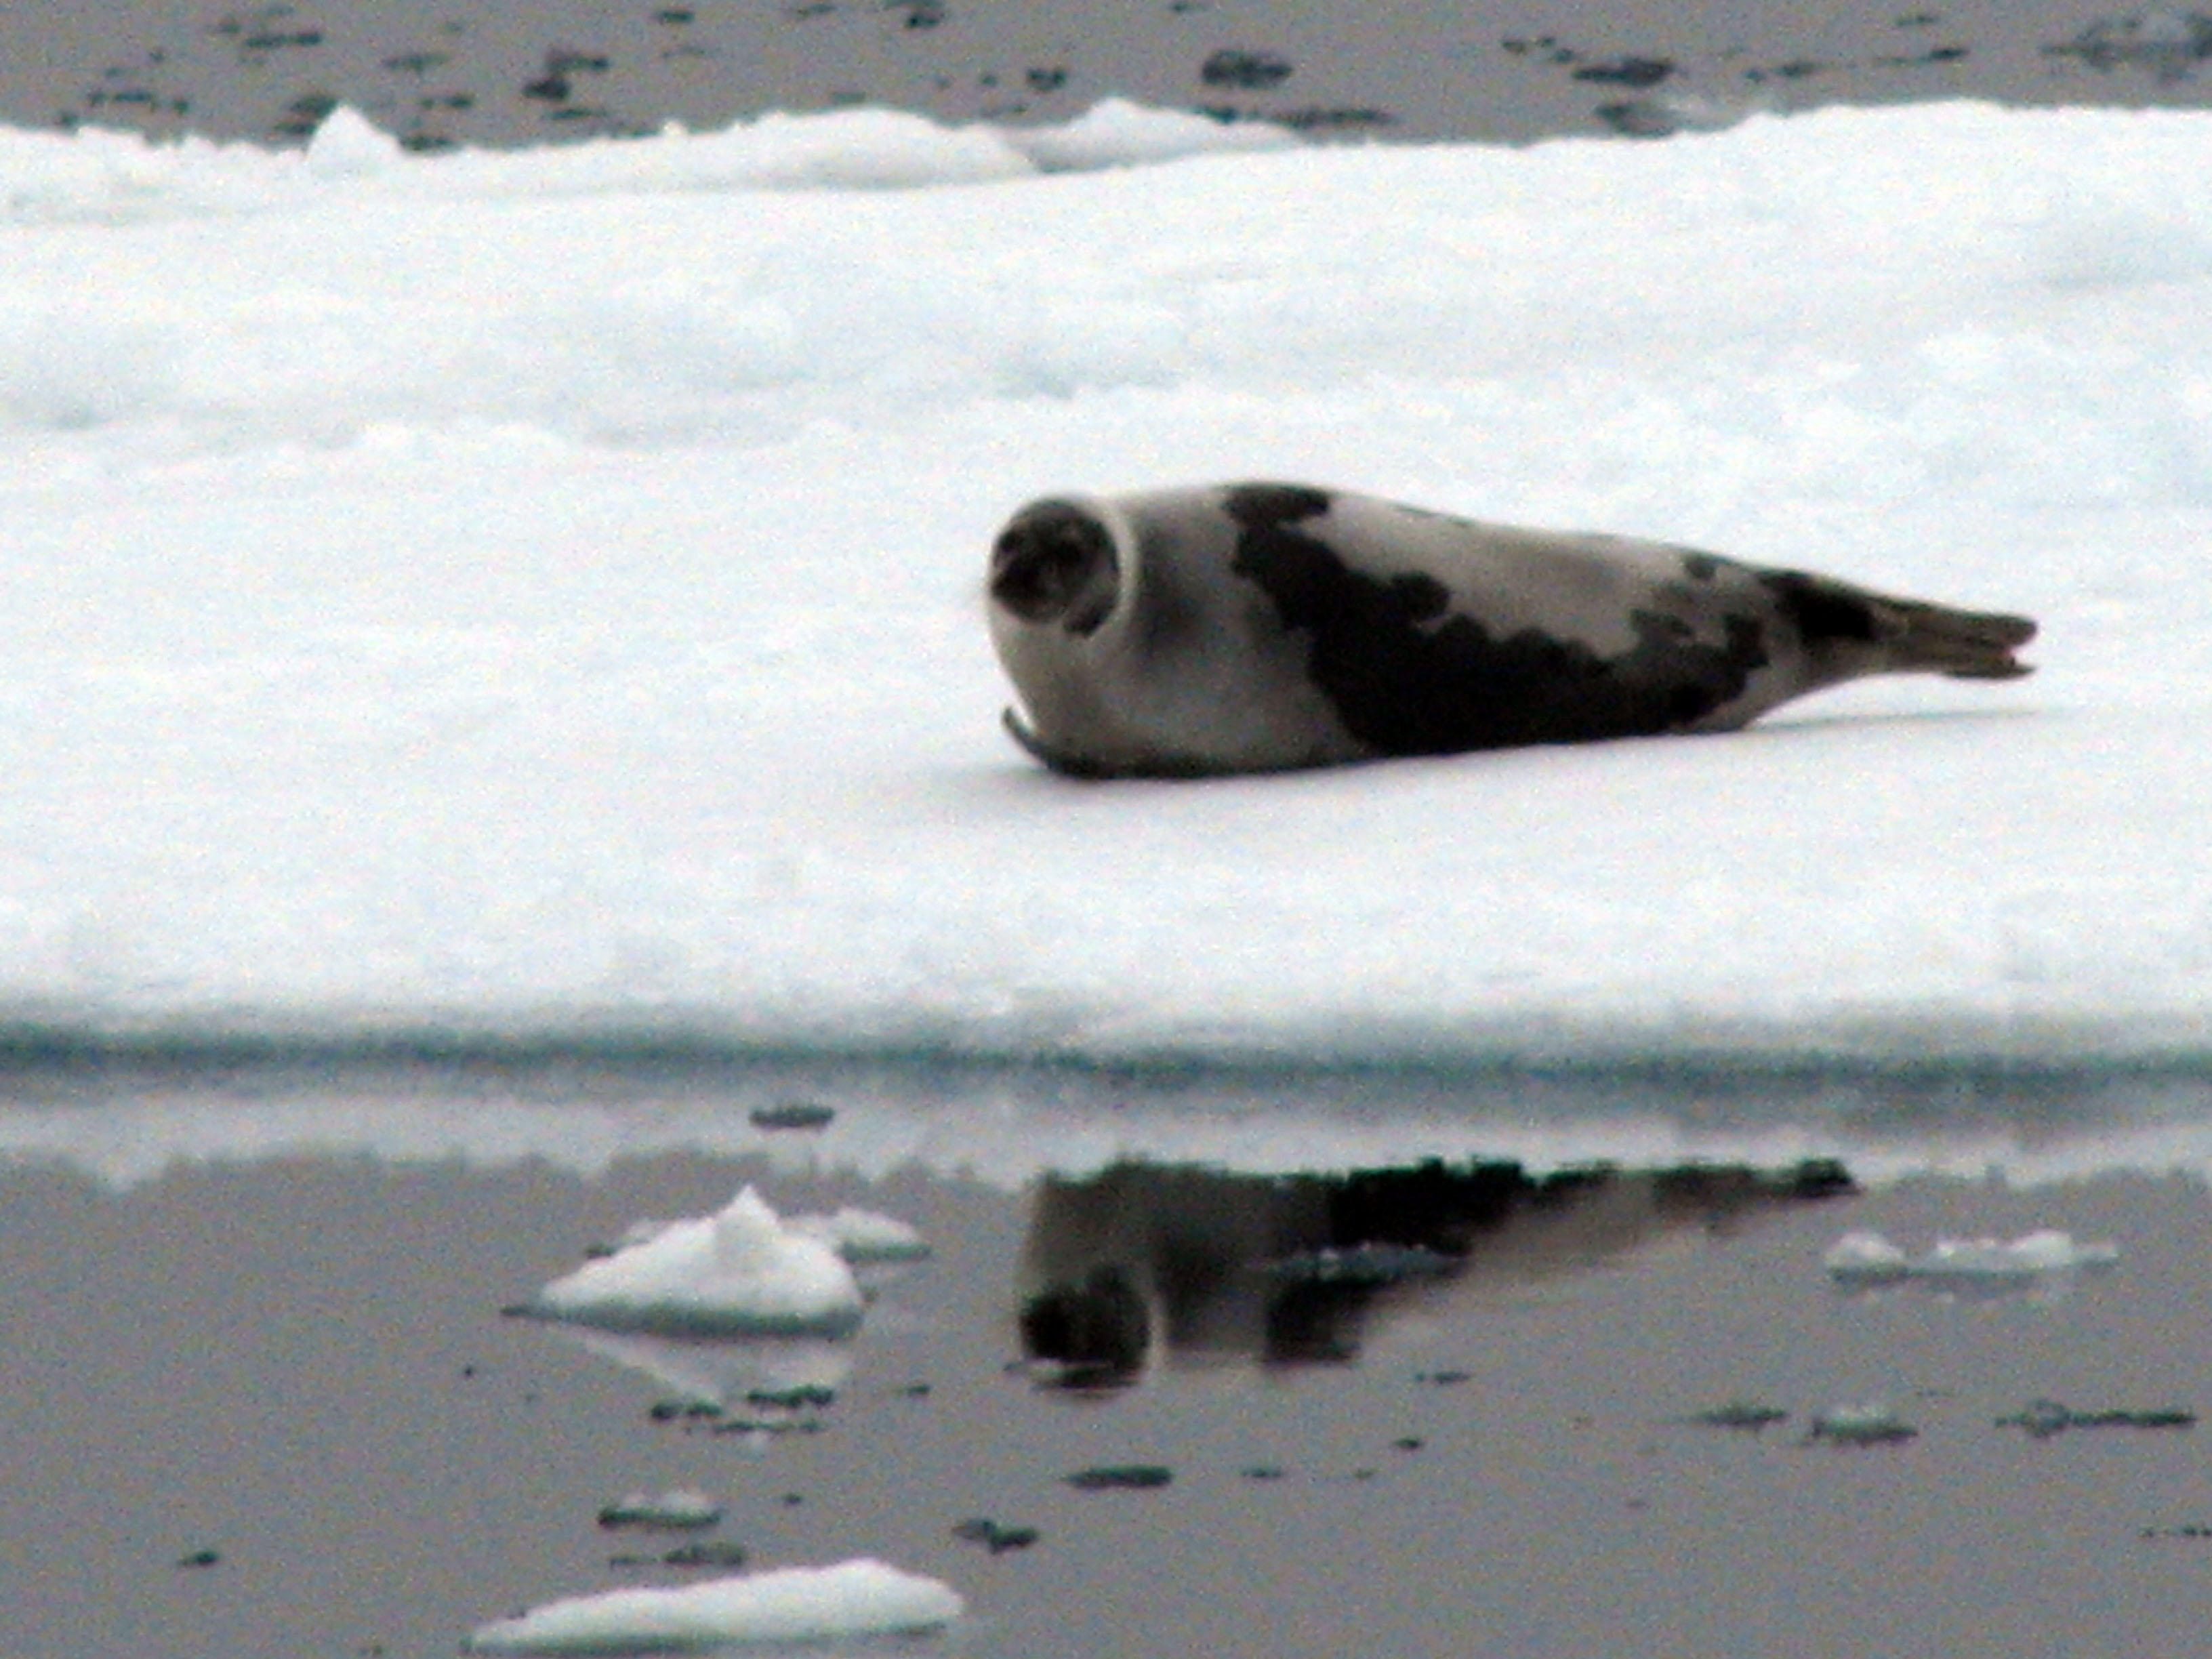 https://upload.wikimedia.org/wikipedia/commons/a/a2/Harp_seal.jpg